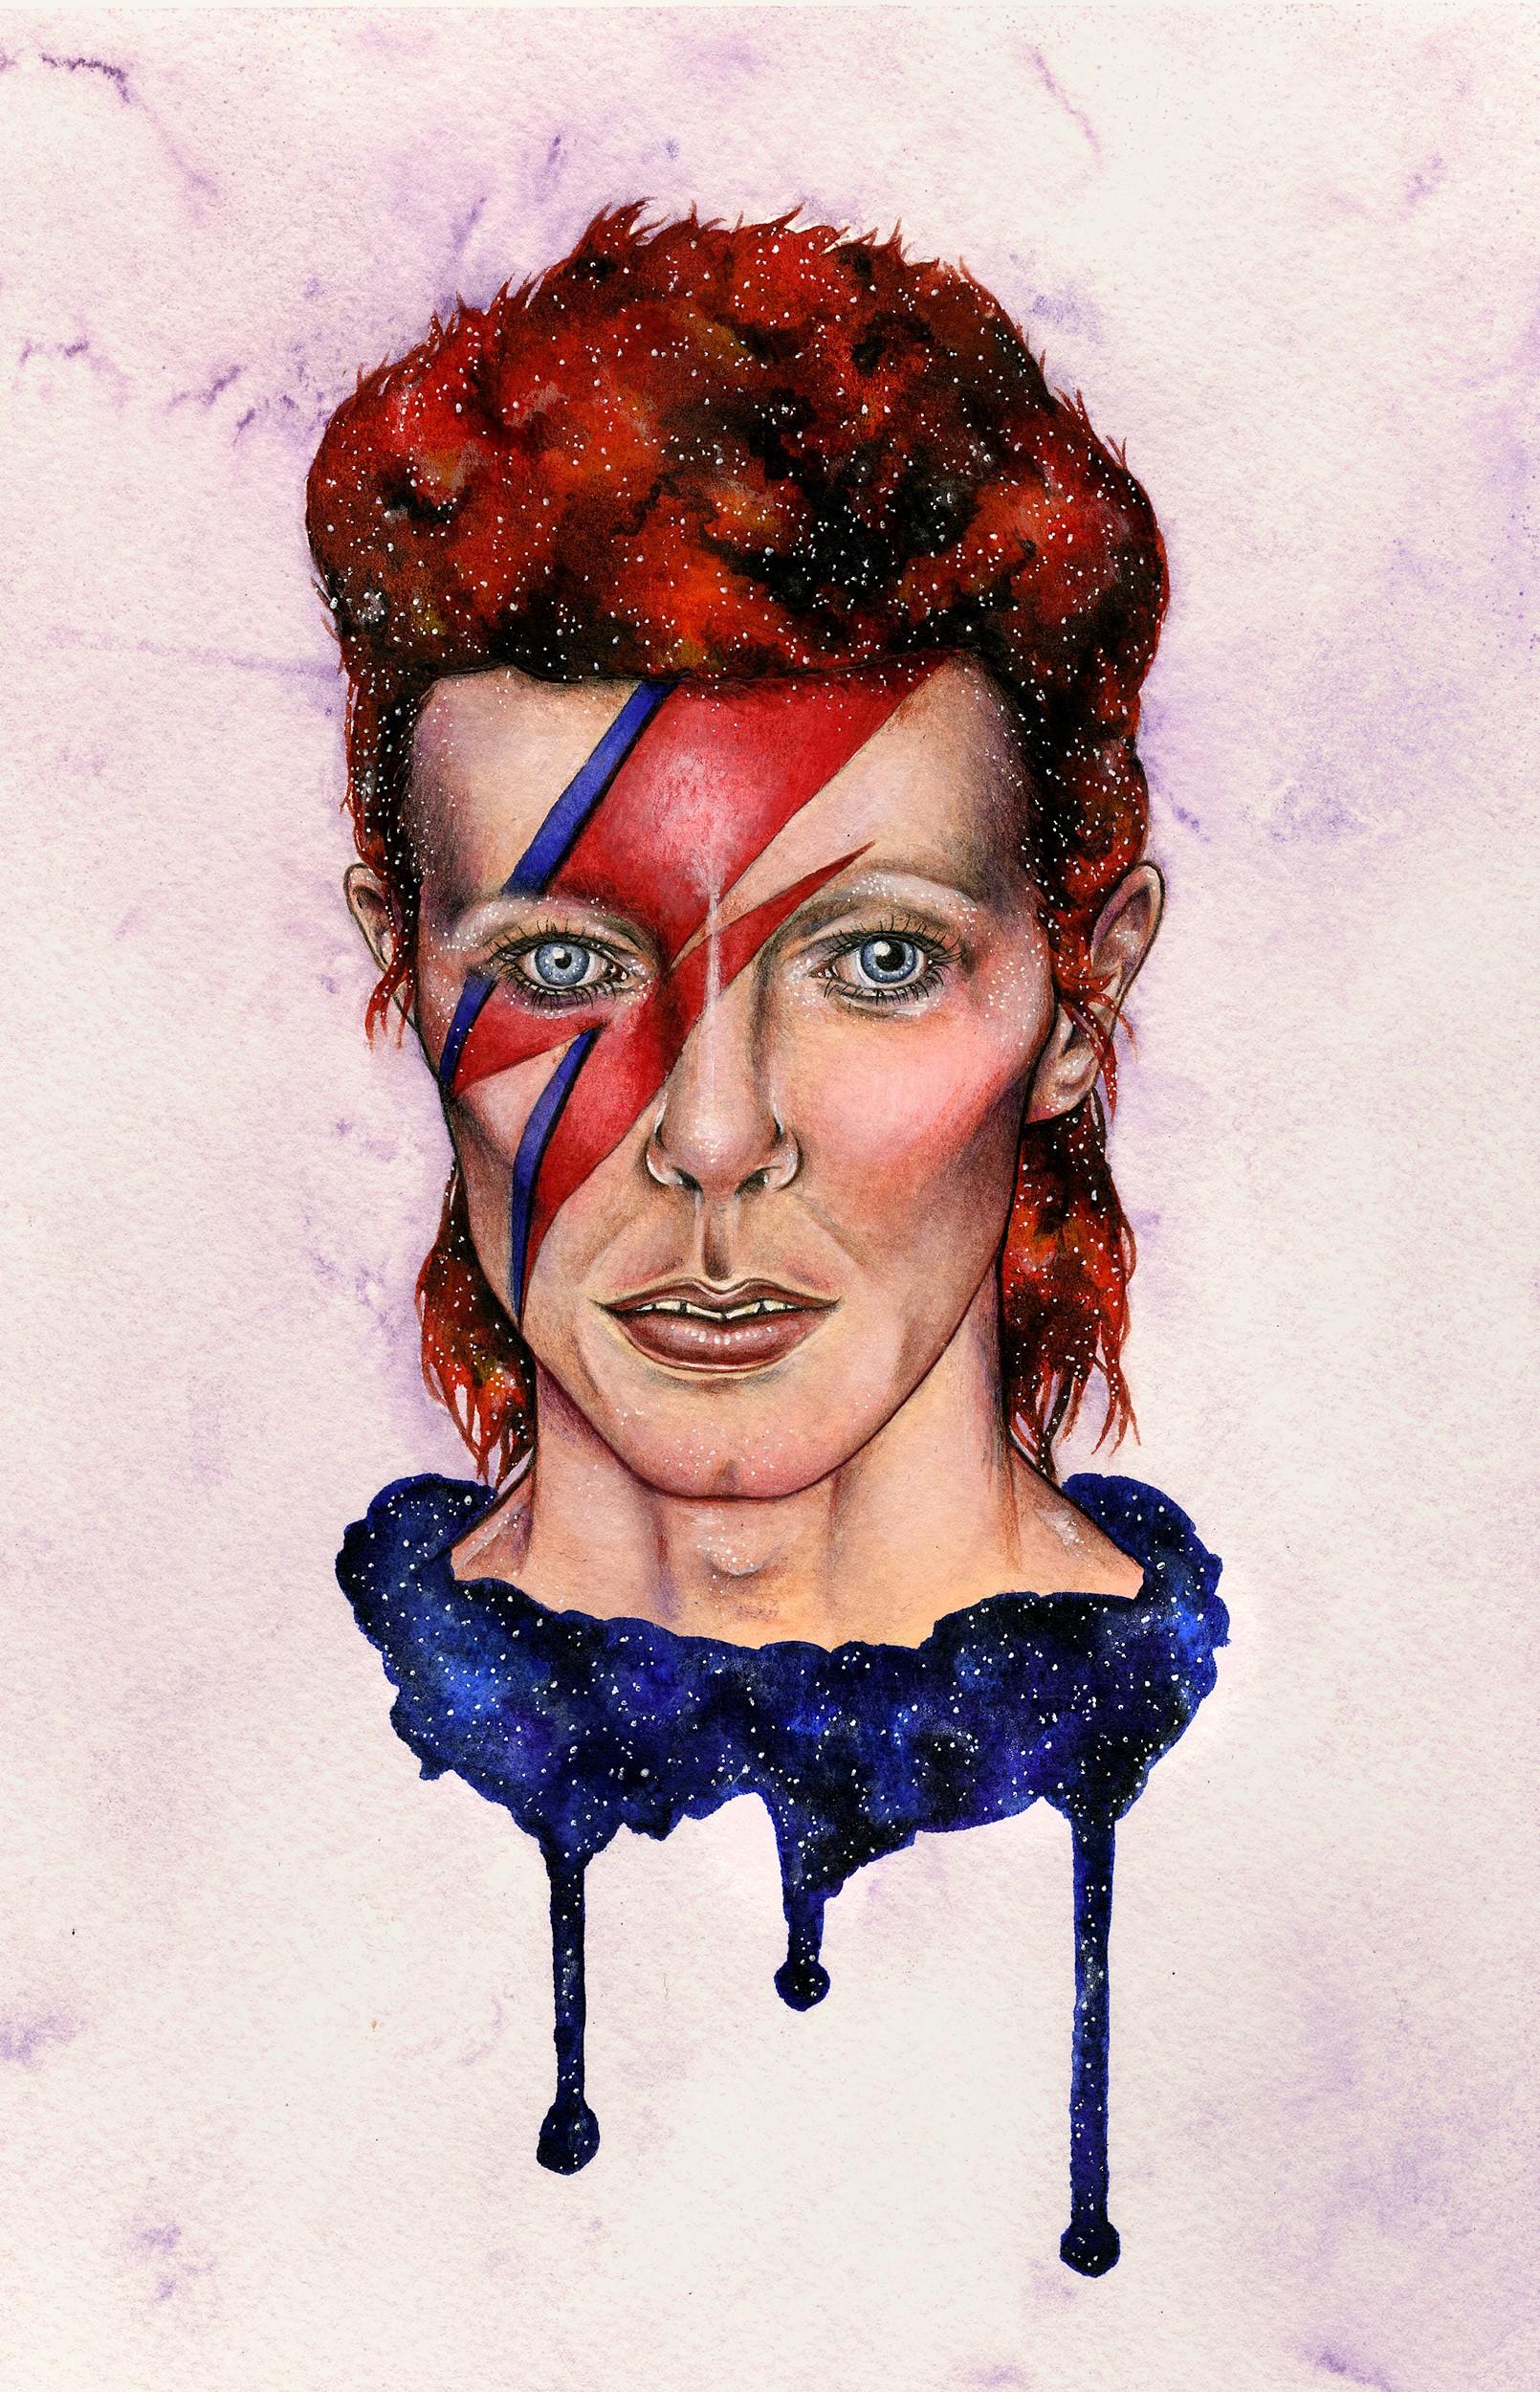 Ziggy Stardust - A Birthday Tribute to David Bowie by the illustrator Holly Khraibani